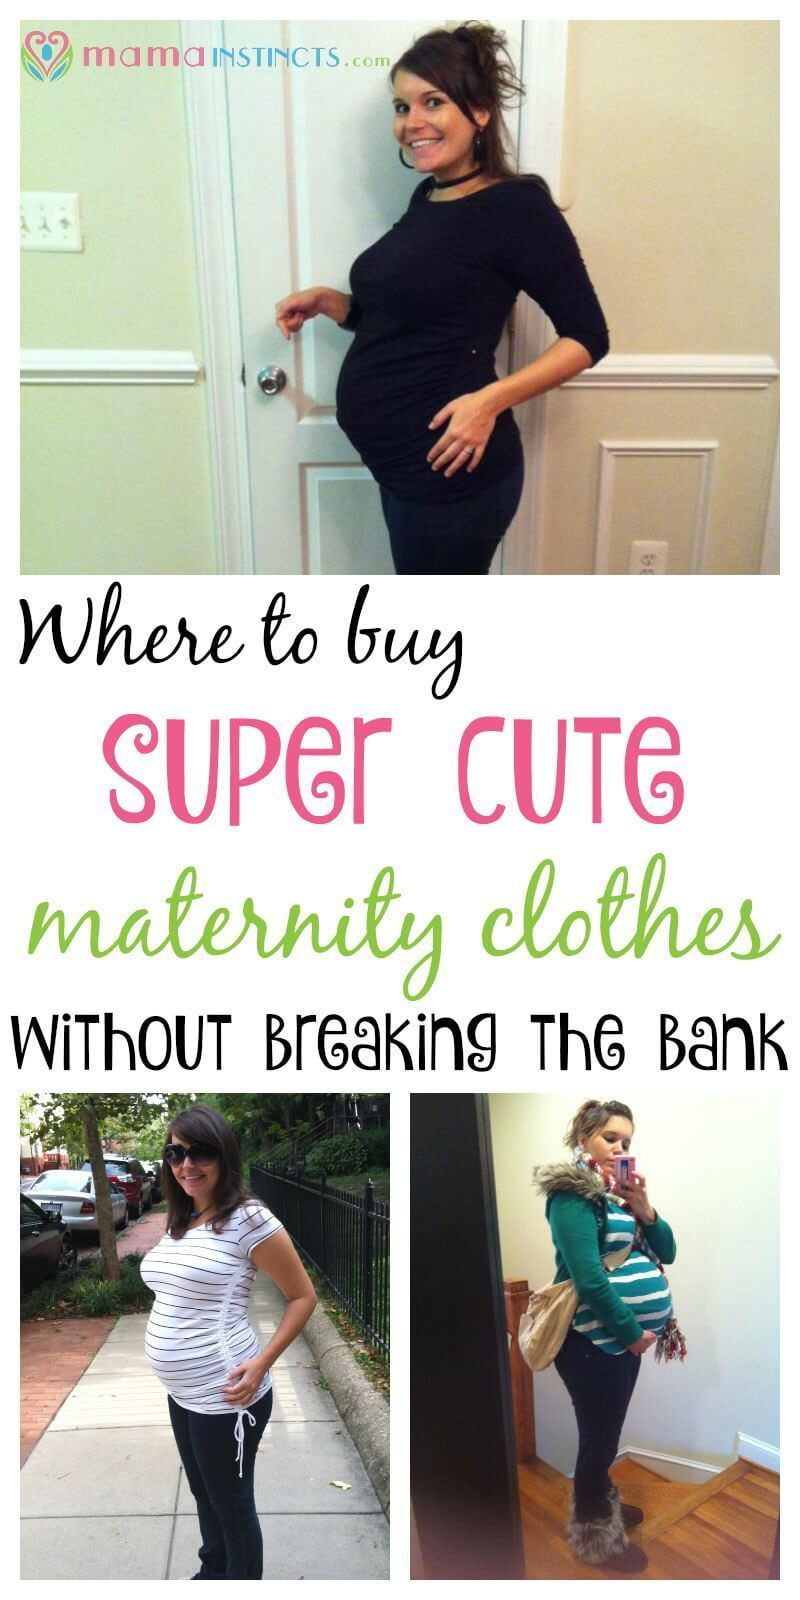 386873de4d7 Maternity clothes can be expensive but they don t have to be. Check out  these 10 places where you can find affordable maternity clothes and still  look cute.